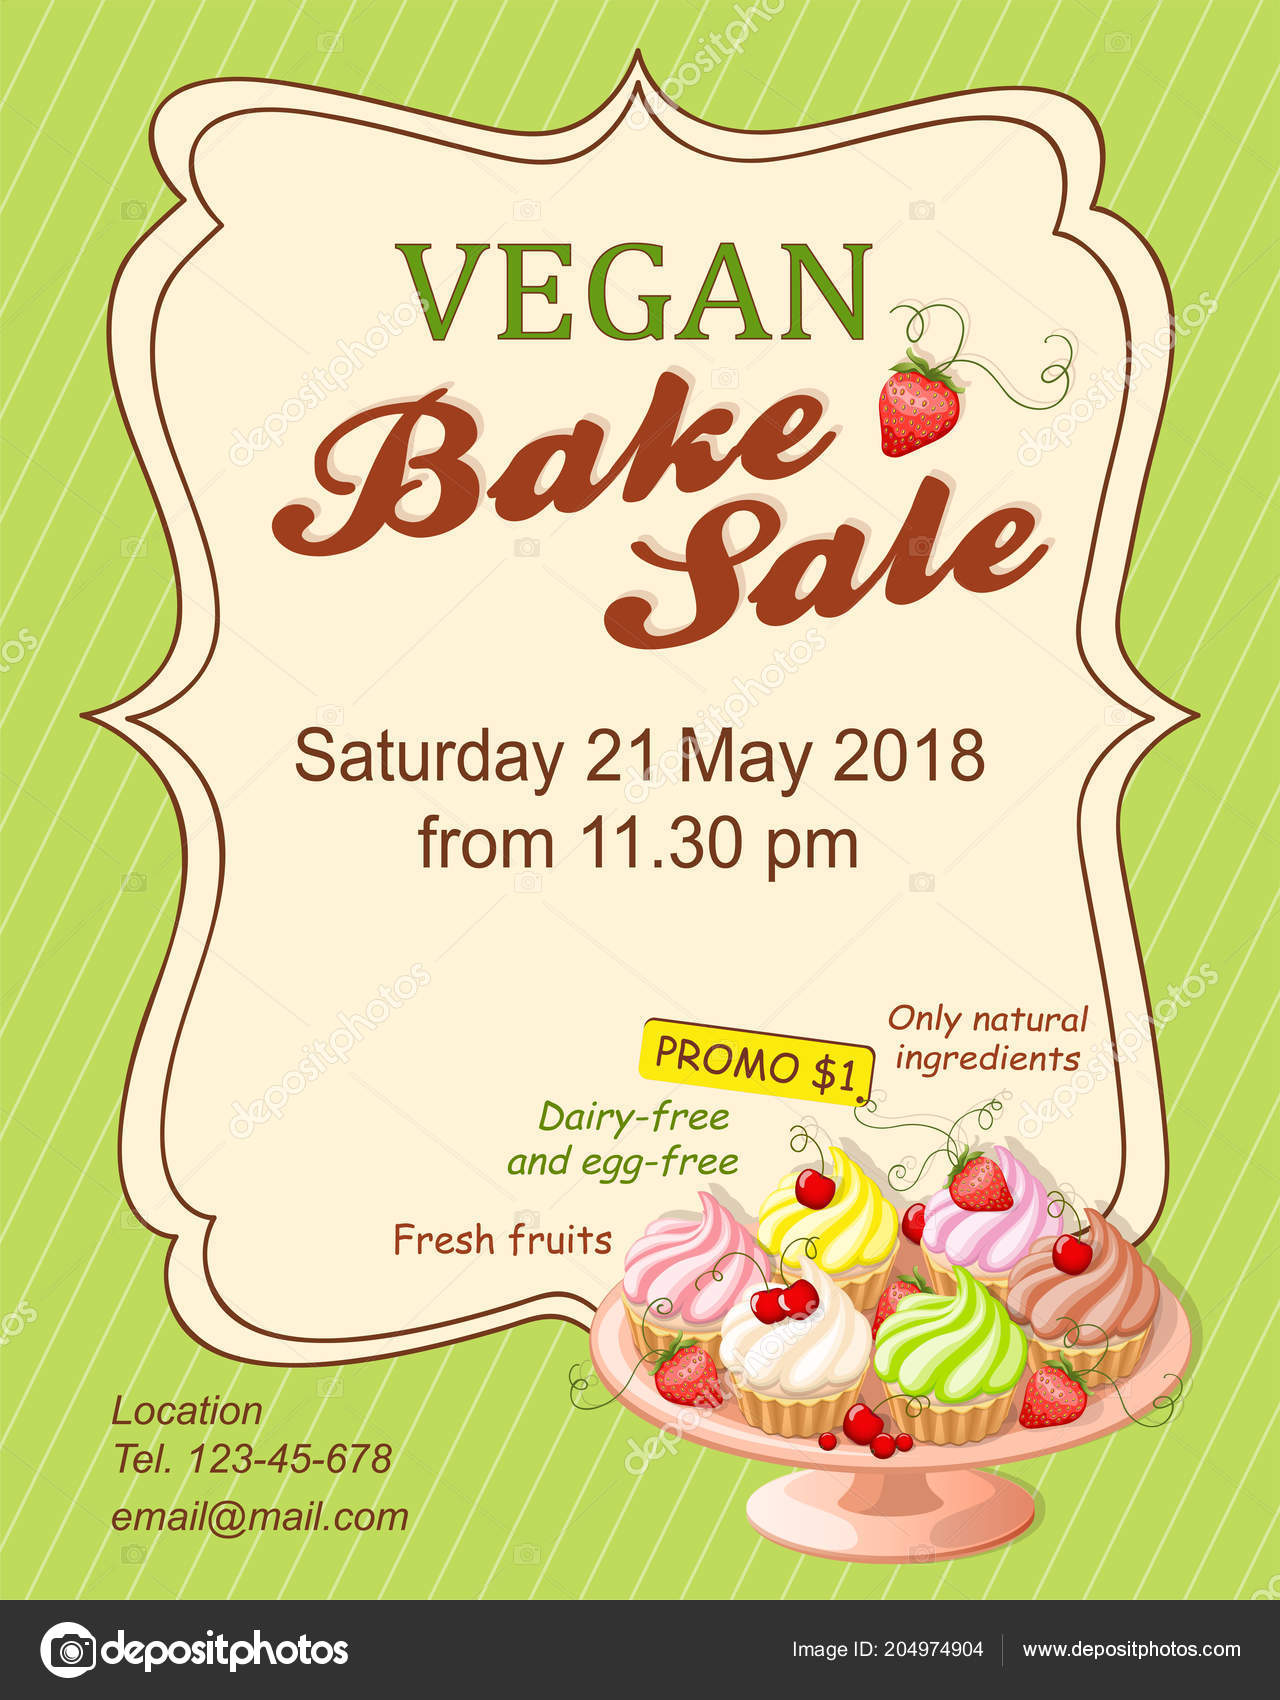 Boutique flyer template | Colorful Flyer Template Vegan Bake